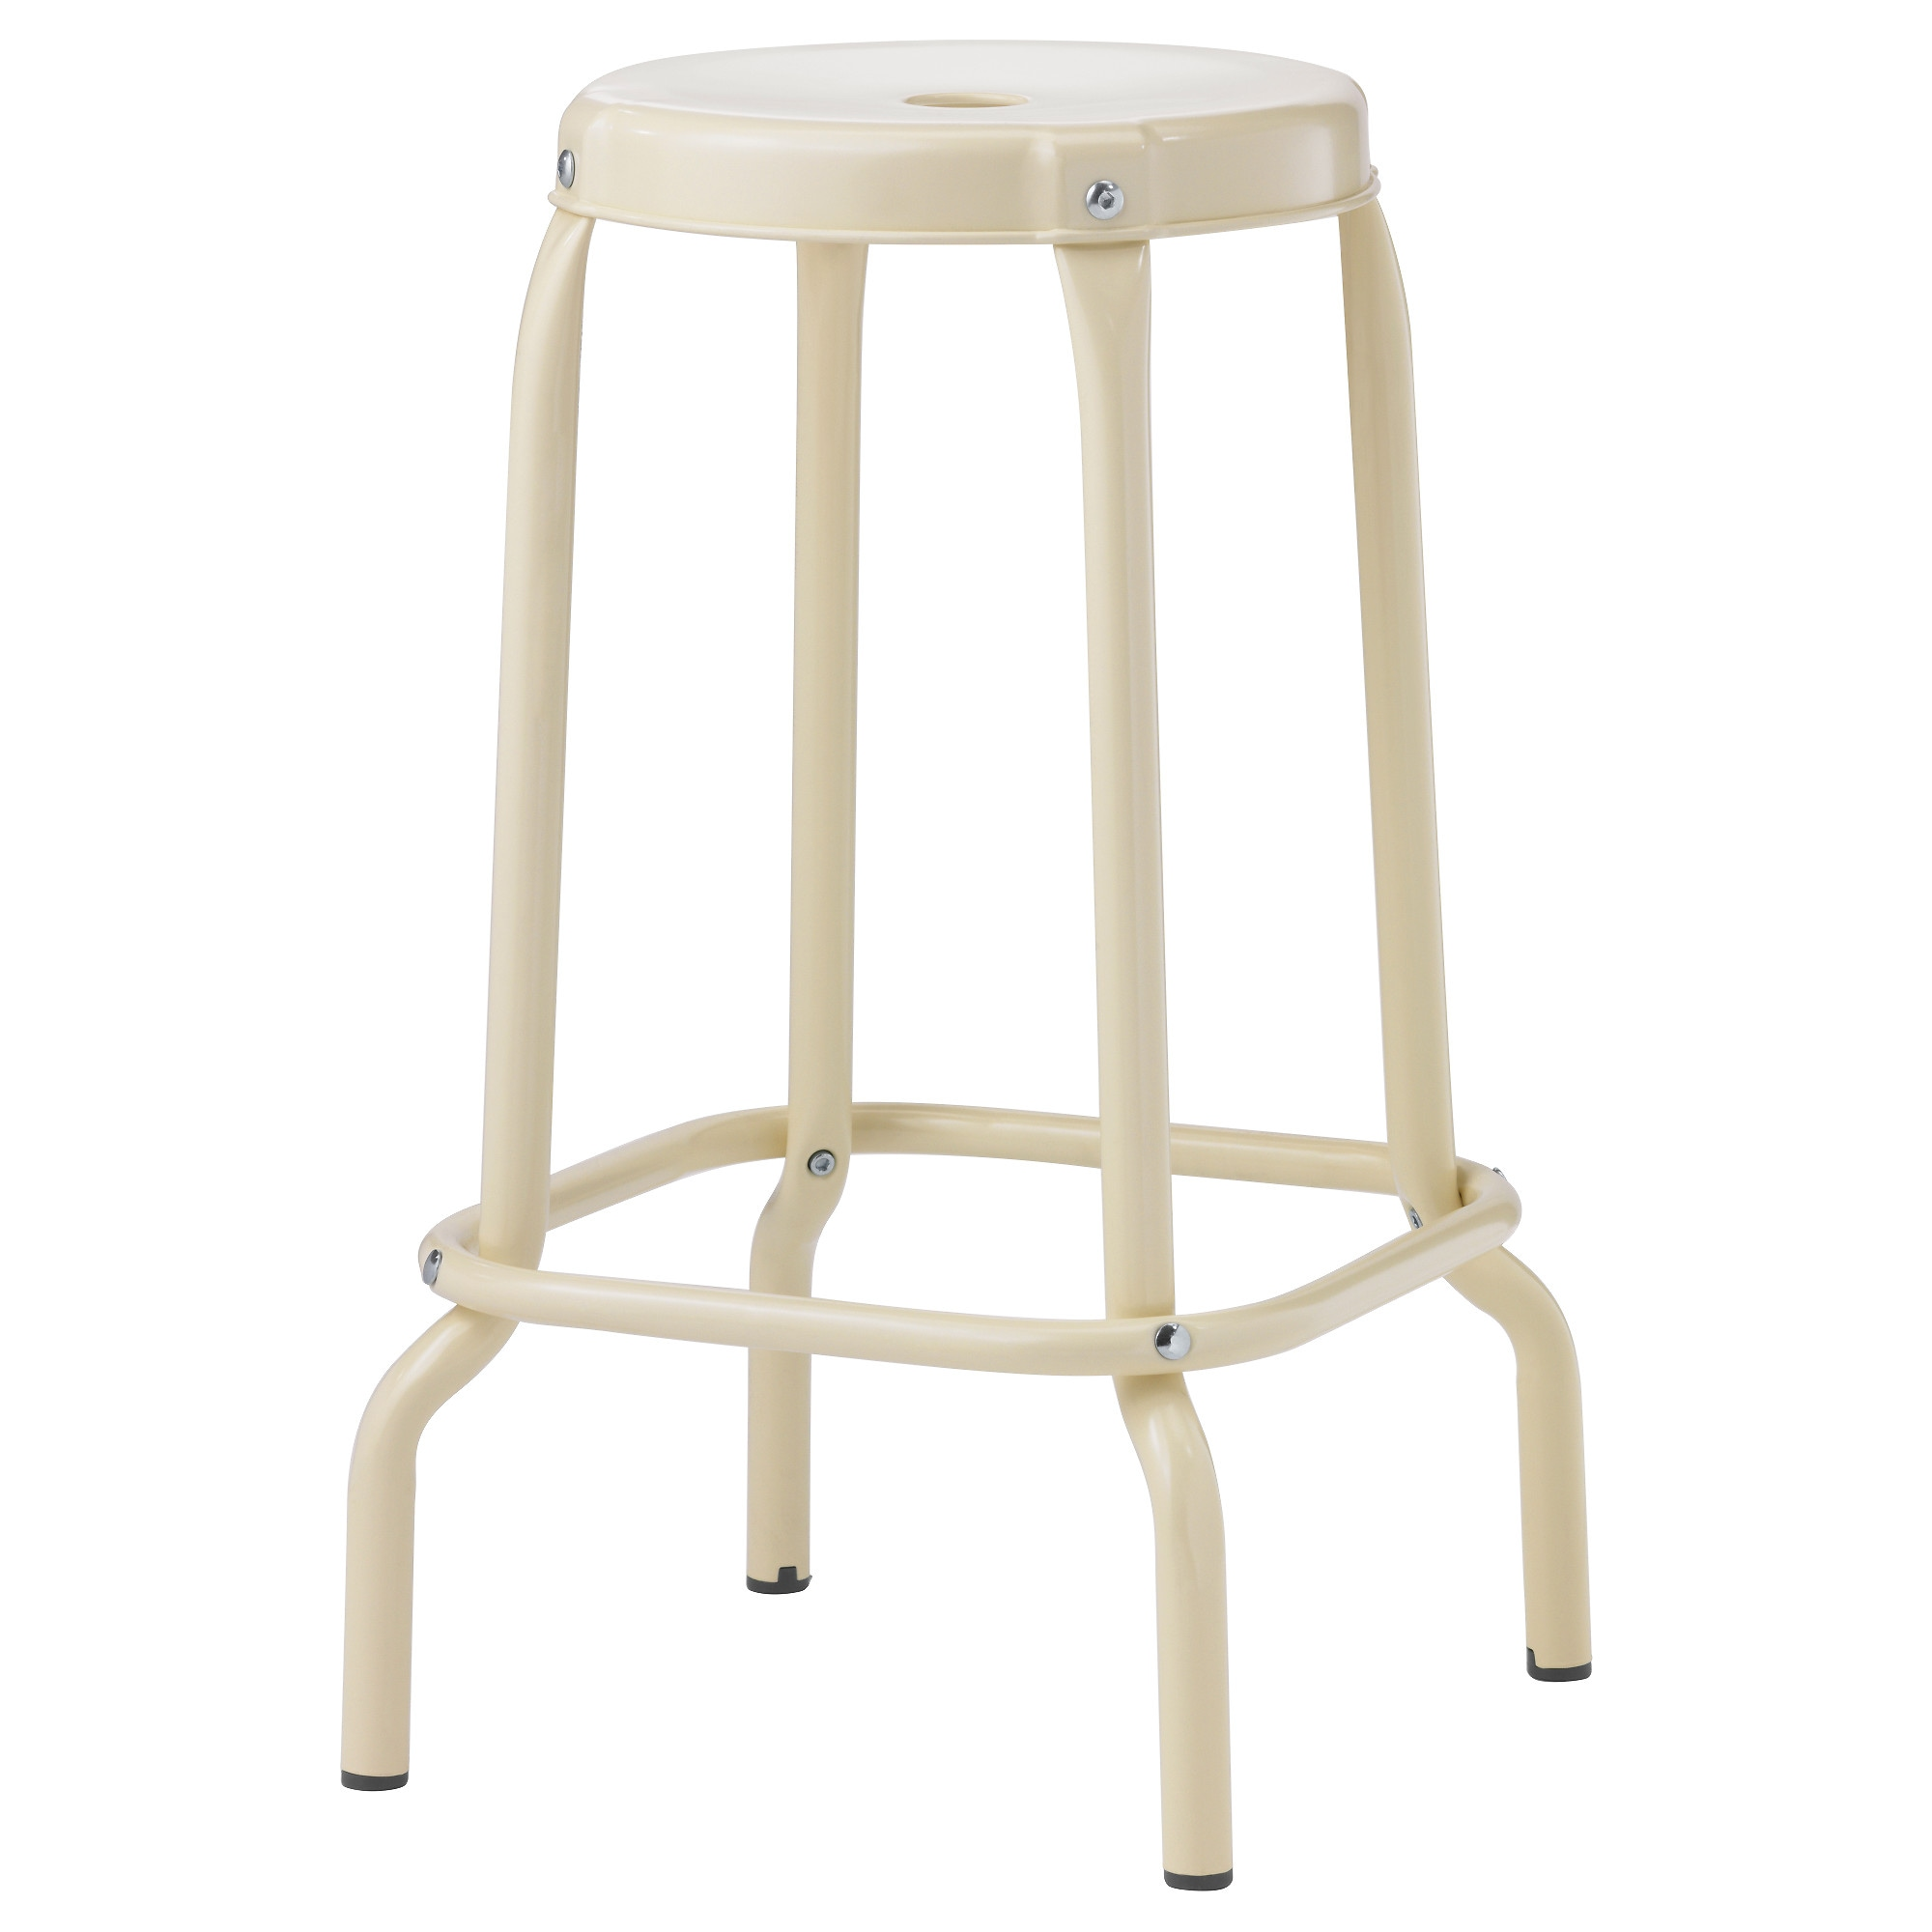 RÅSKOG Bar Stool, Beige Tested For: 220 Lb Seat Diameter: 11 3/